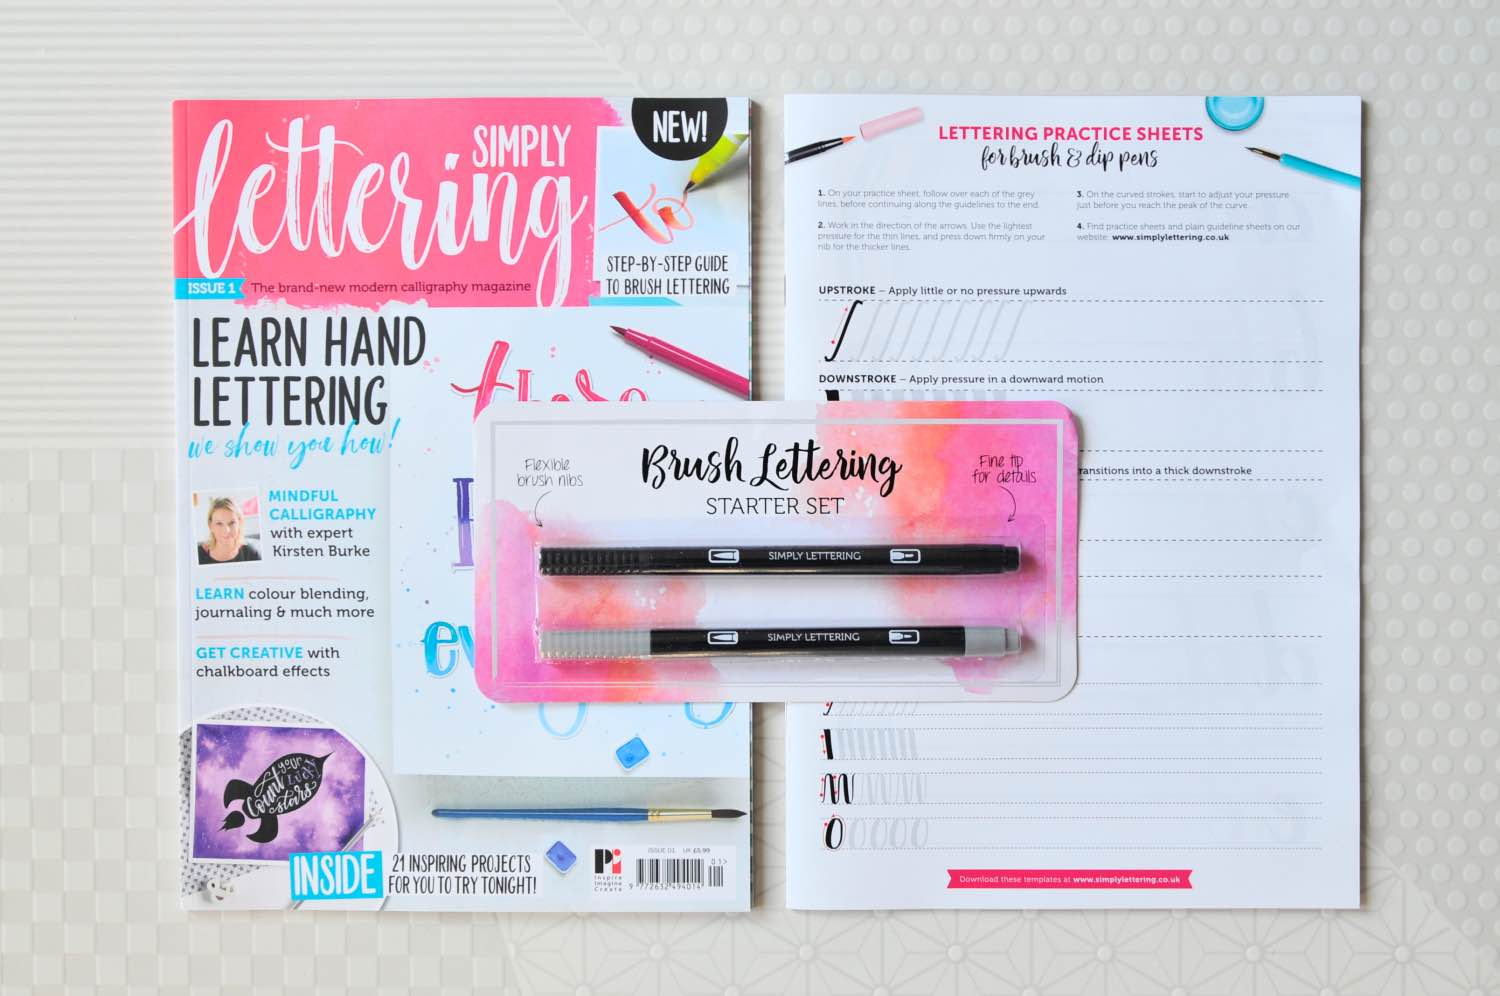 simply lettering magazine workbook and brush lettering pens